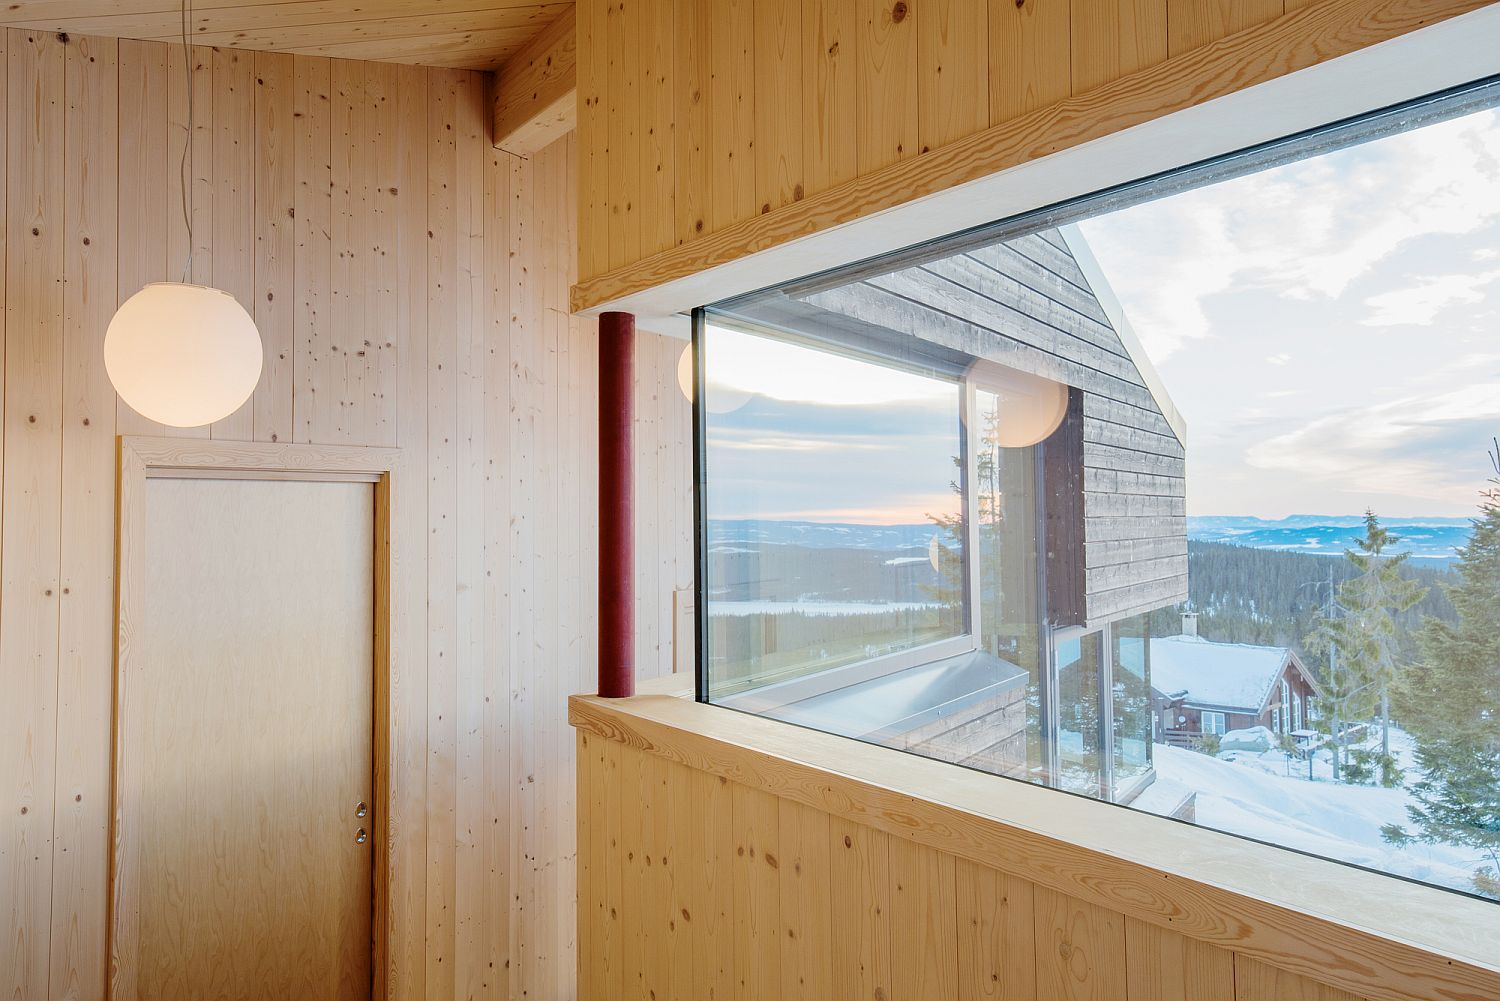 Warm wooden tones inside the cabin combine minimalism with relaxing elegance